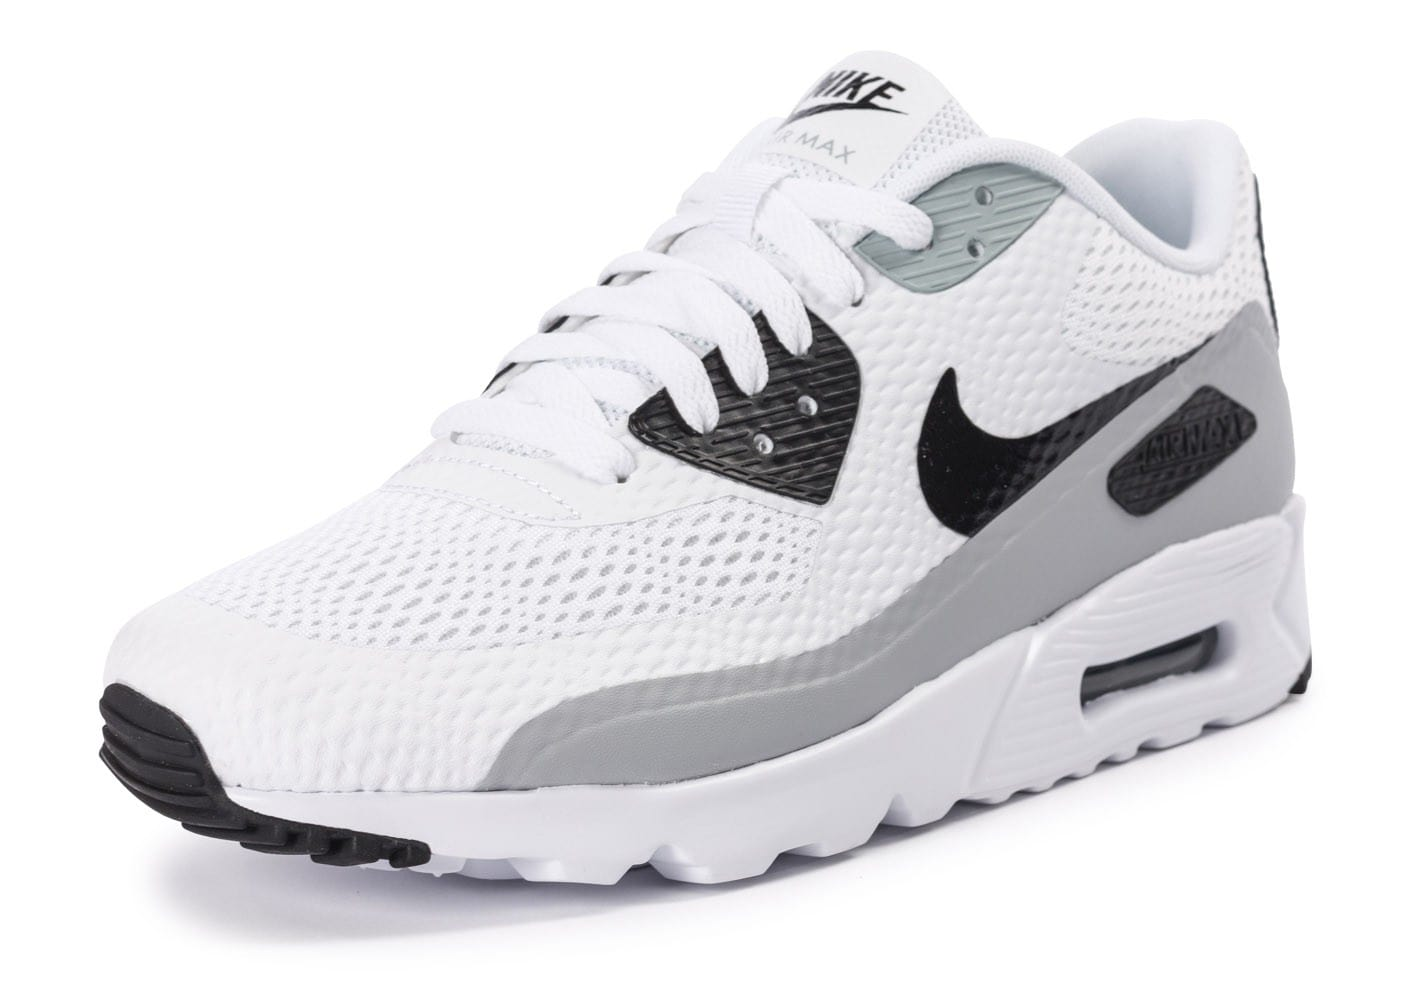 best sneakers cb2e0 76b45 ... italy chaussures nike air max 90 ultra essential blanche et grise vue  avant 81a37 114e2